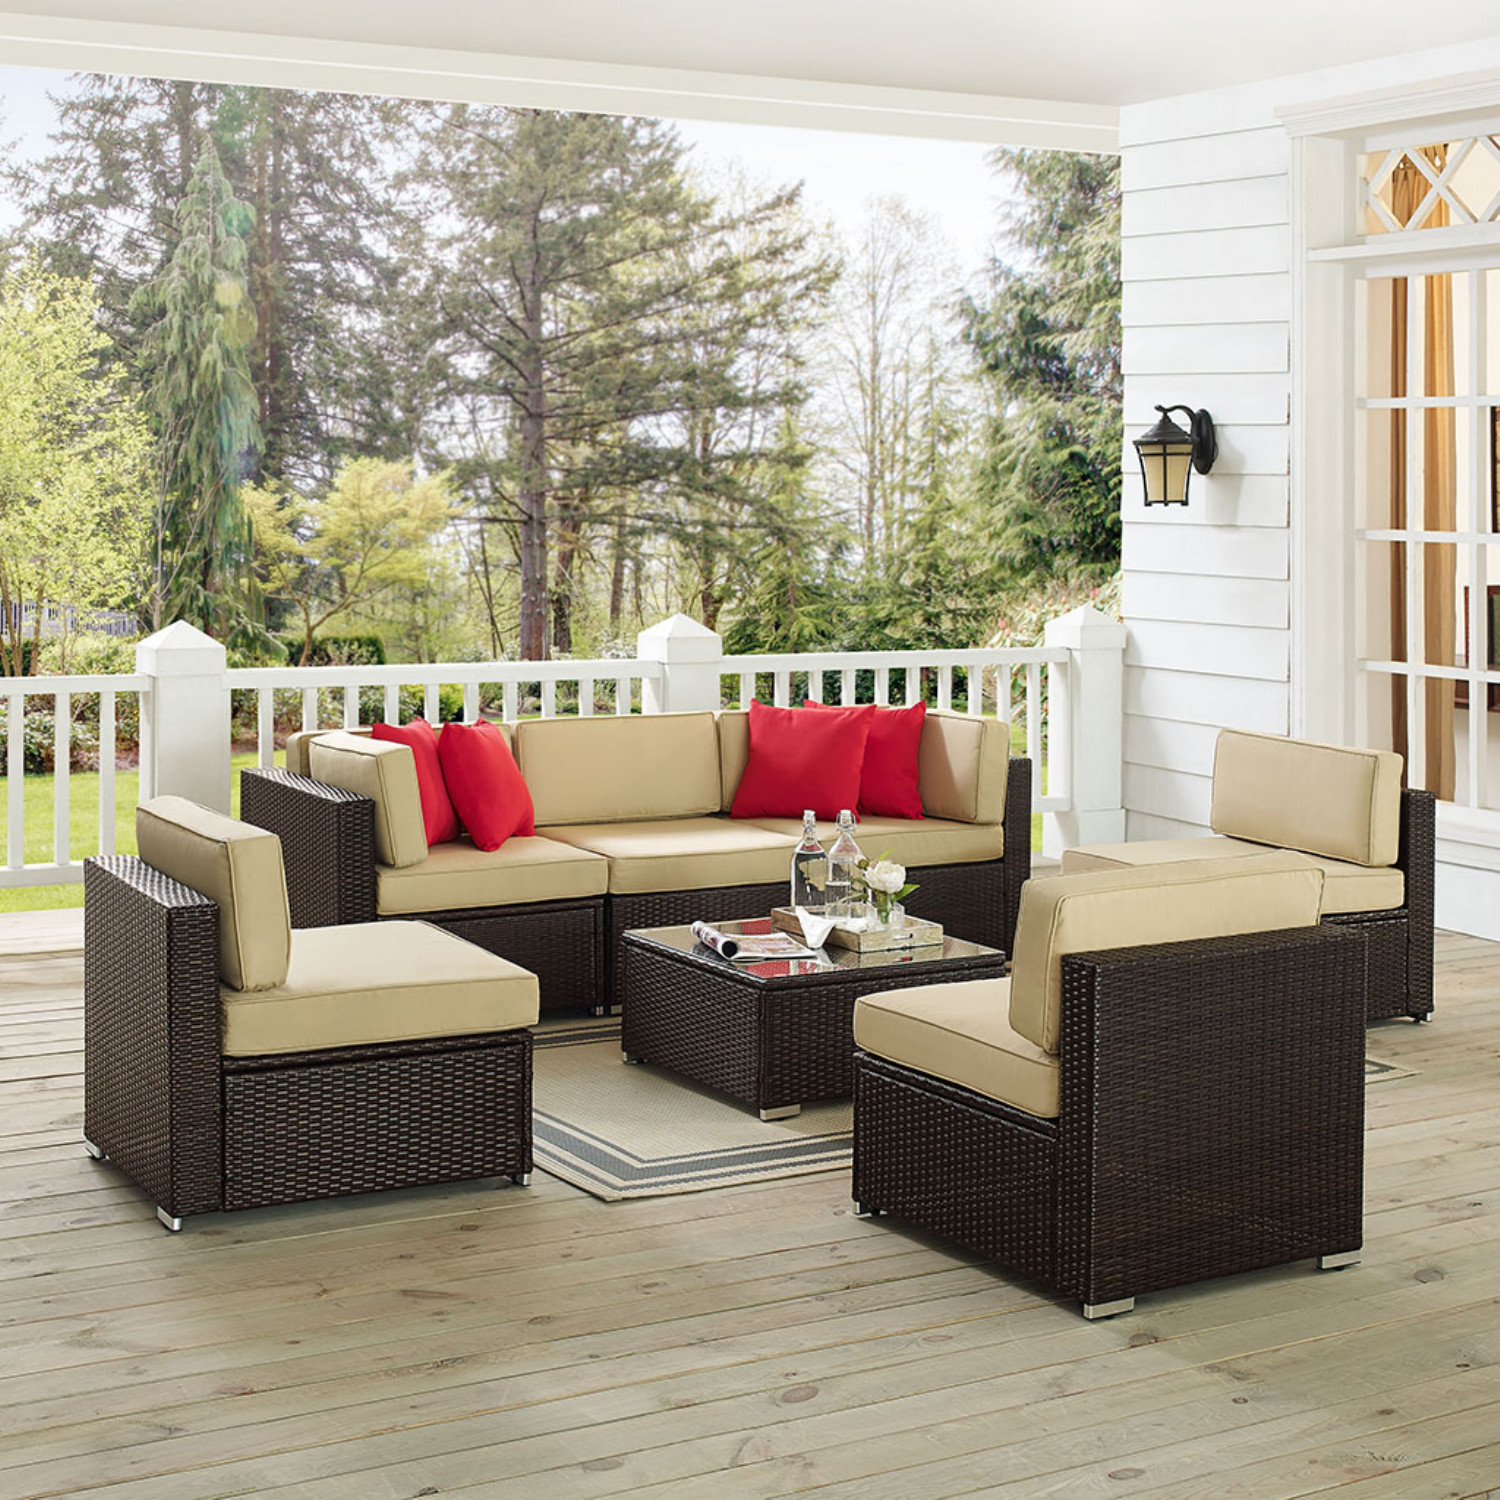 Crosley KO70149 BR Sea Island 7 Piece Outdoor Sofa Set In